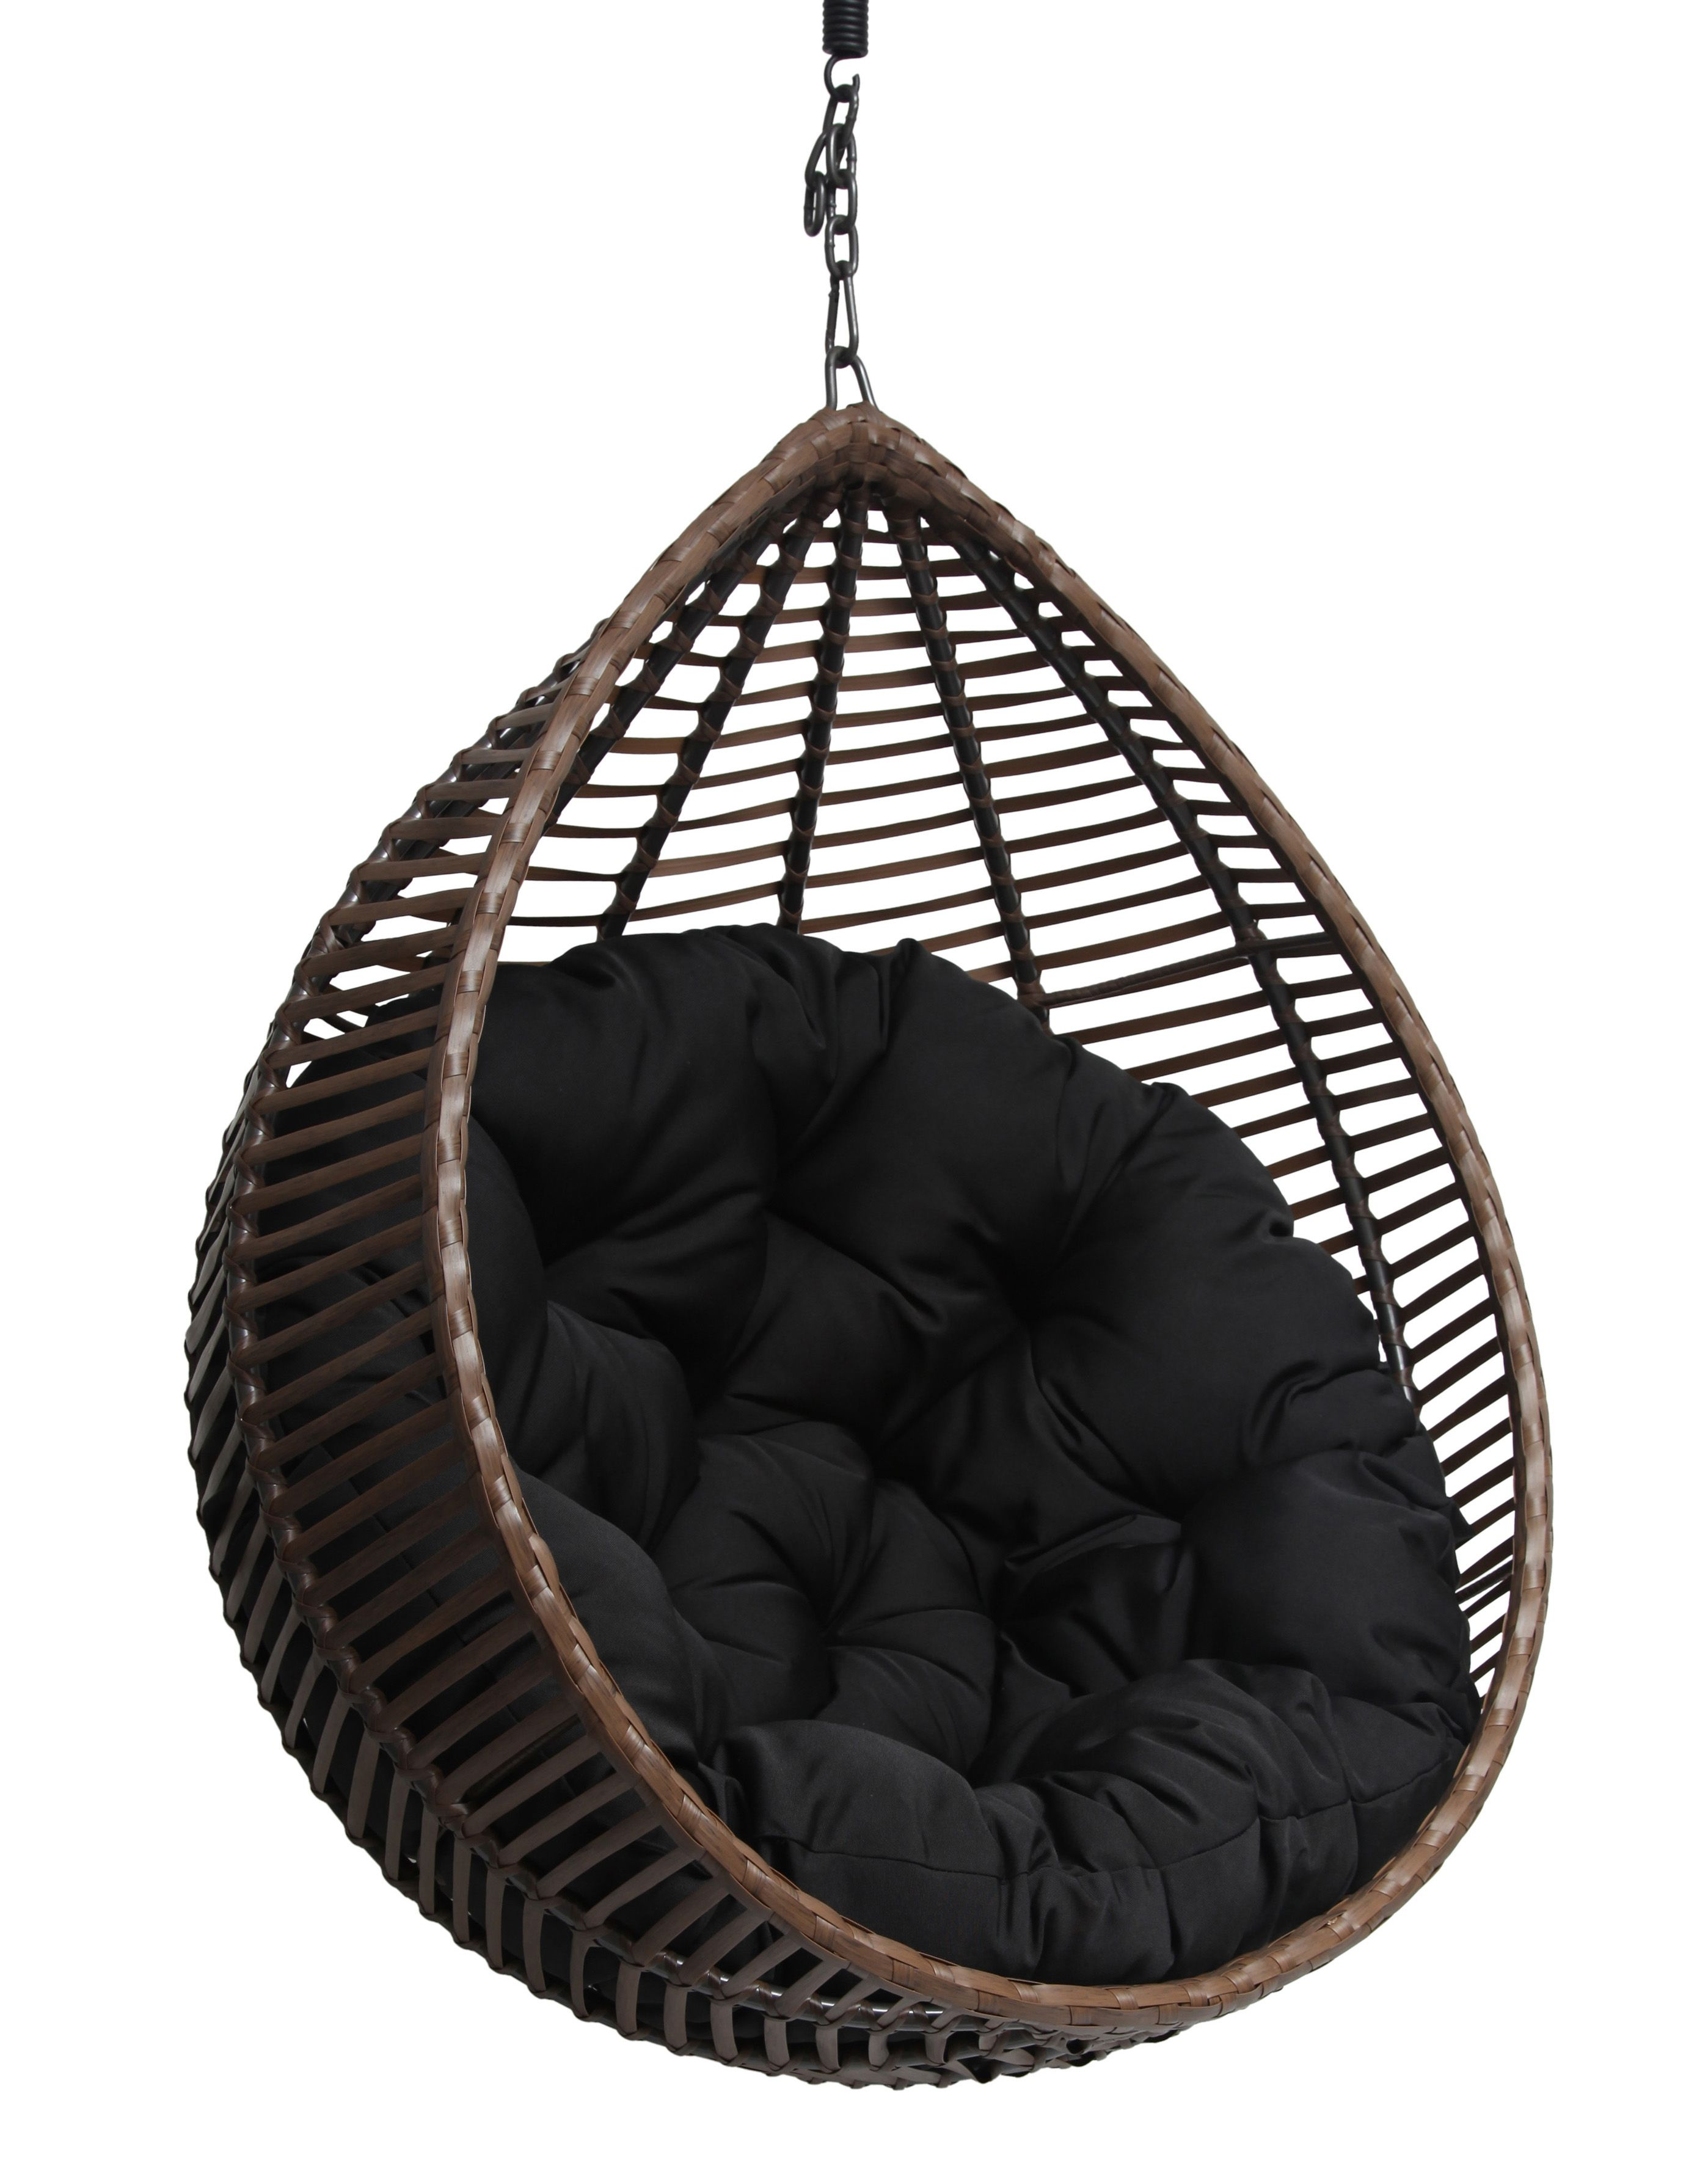 Egg Chair Stand Australia Tv Remote Holder For This Little Beauty Is Inspired By An Aussie Gumnut Hence